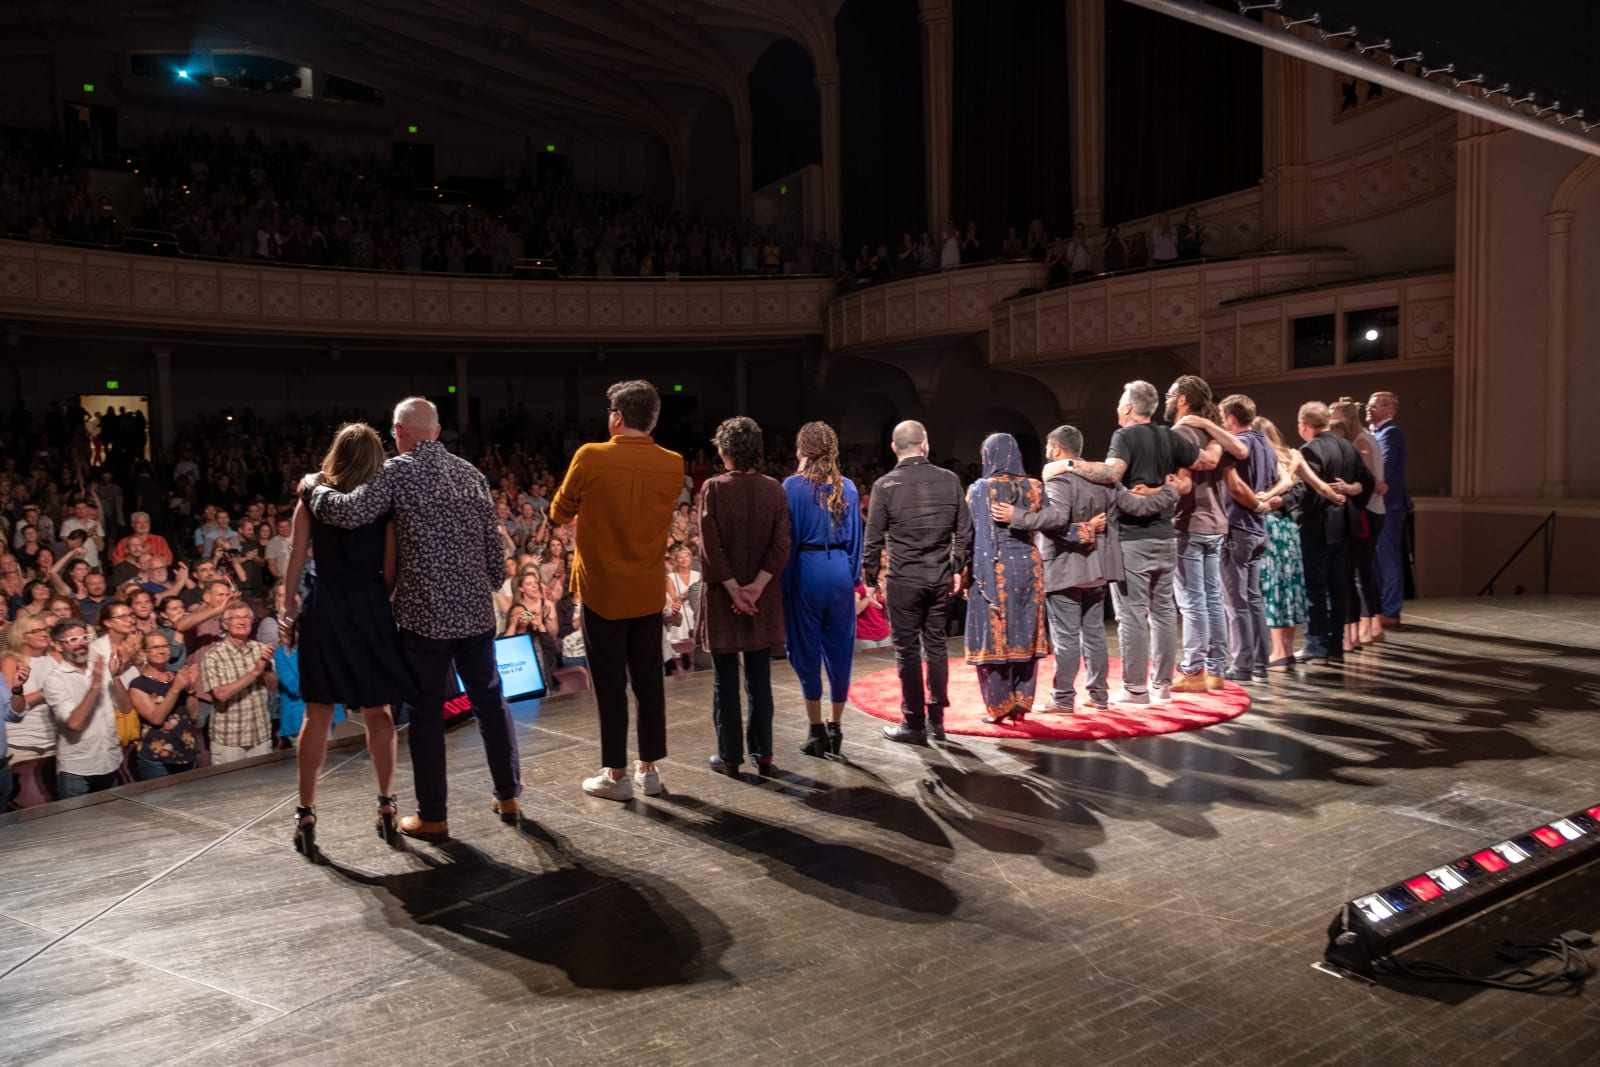 TEDxBoulder Performers Bow